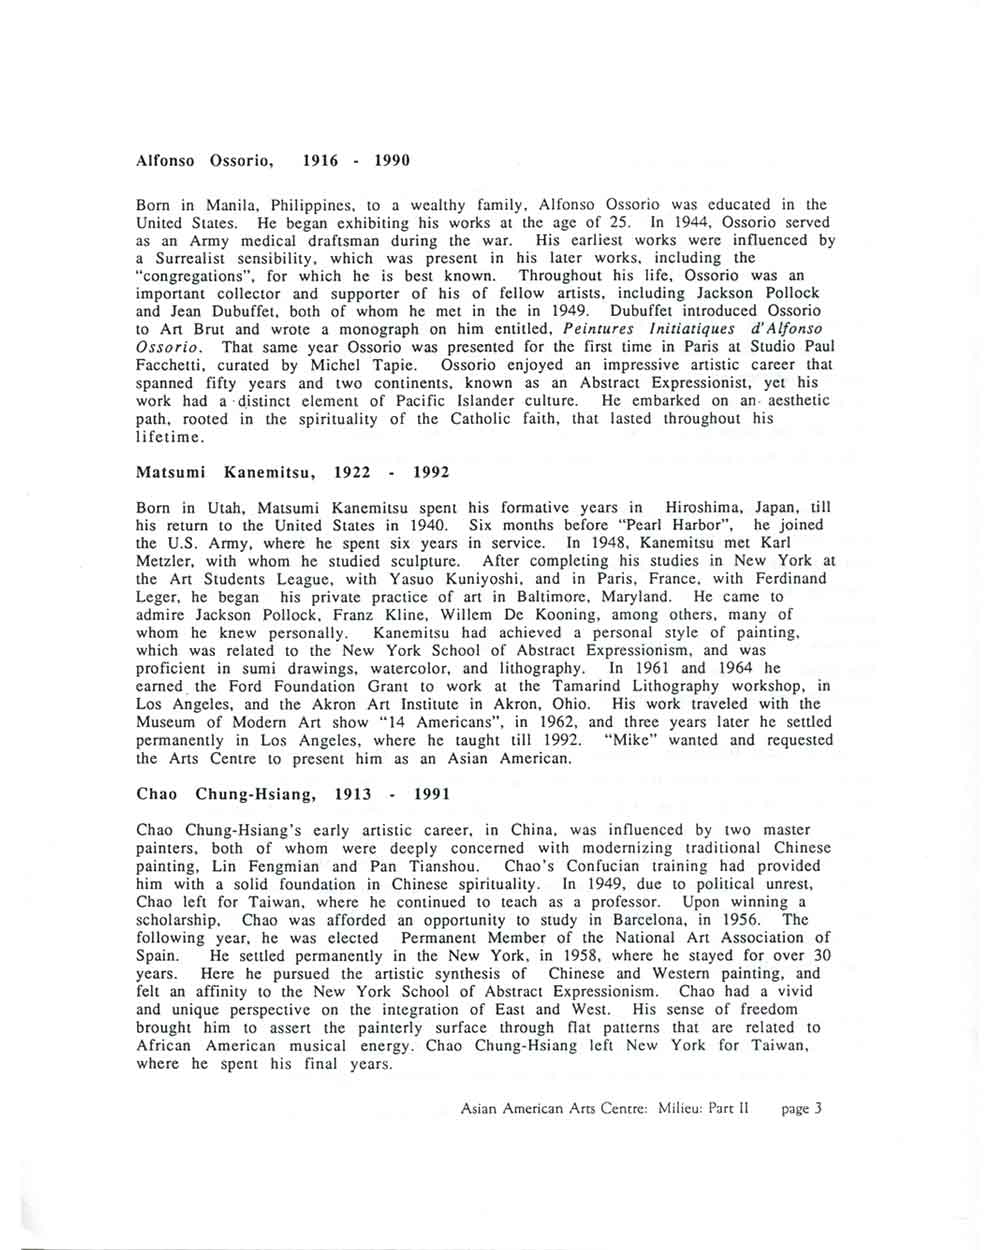 Milieu: Part II 1945-1965, press release, pg 3